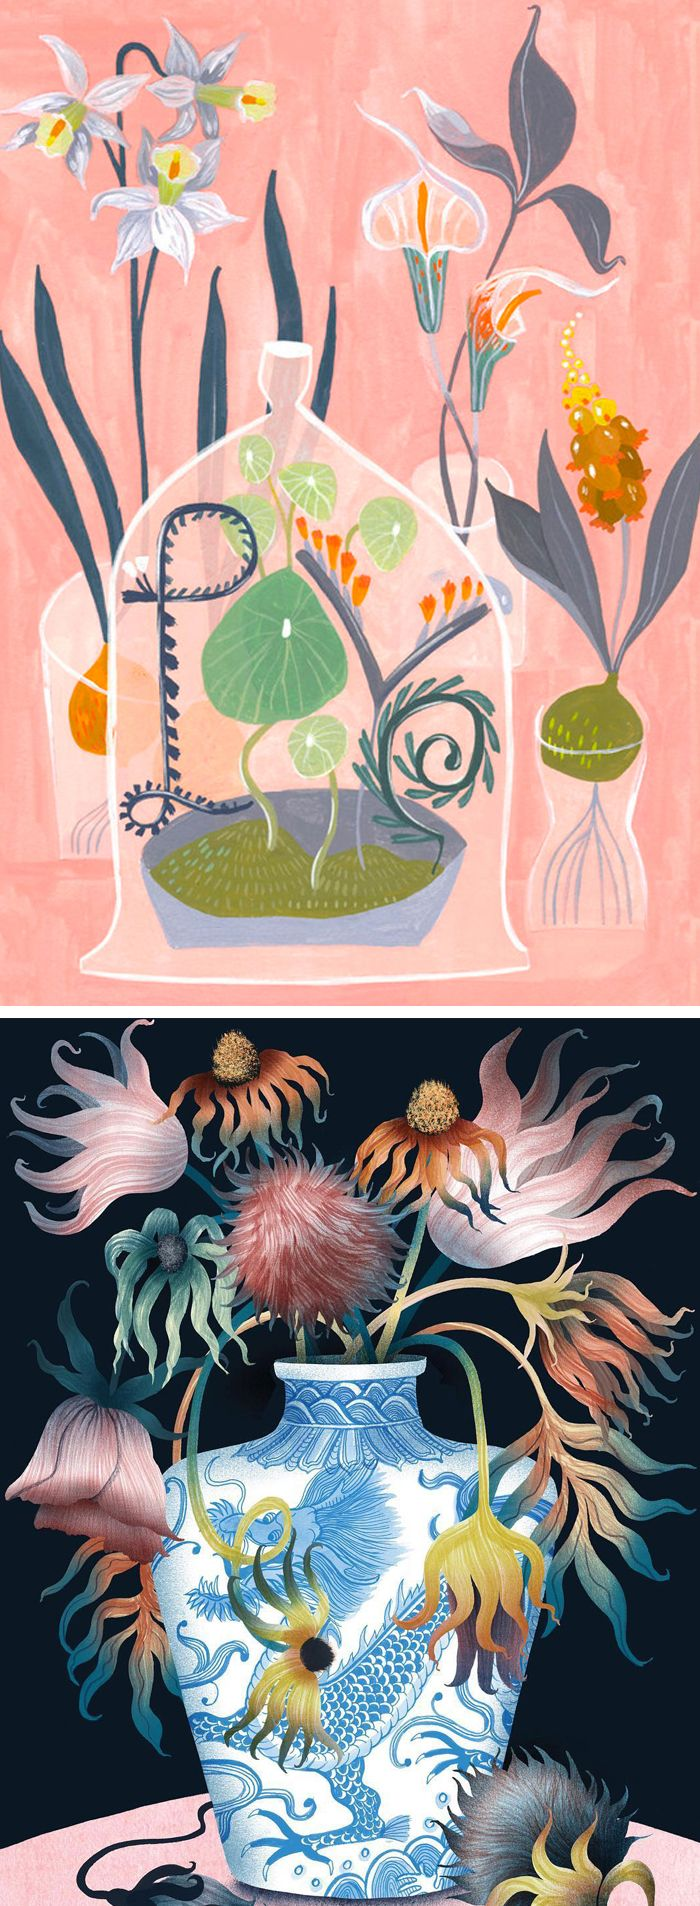 Illustrations of vases